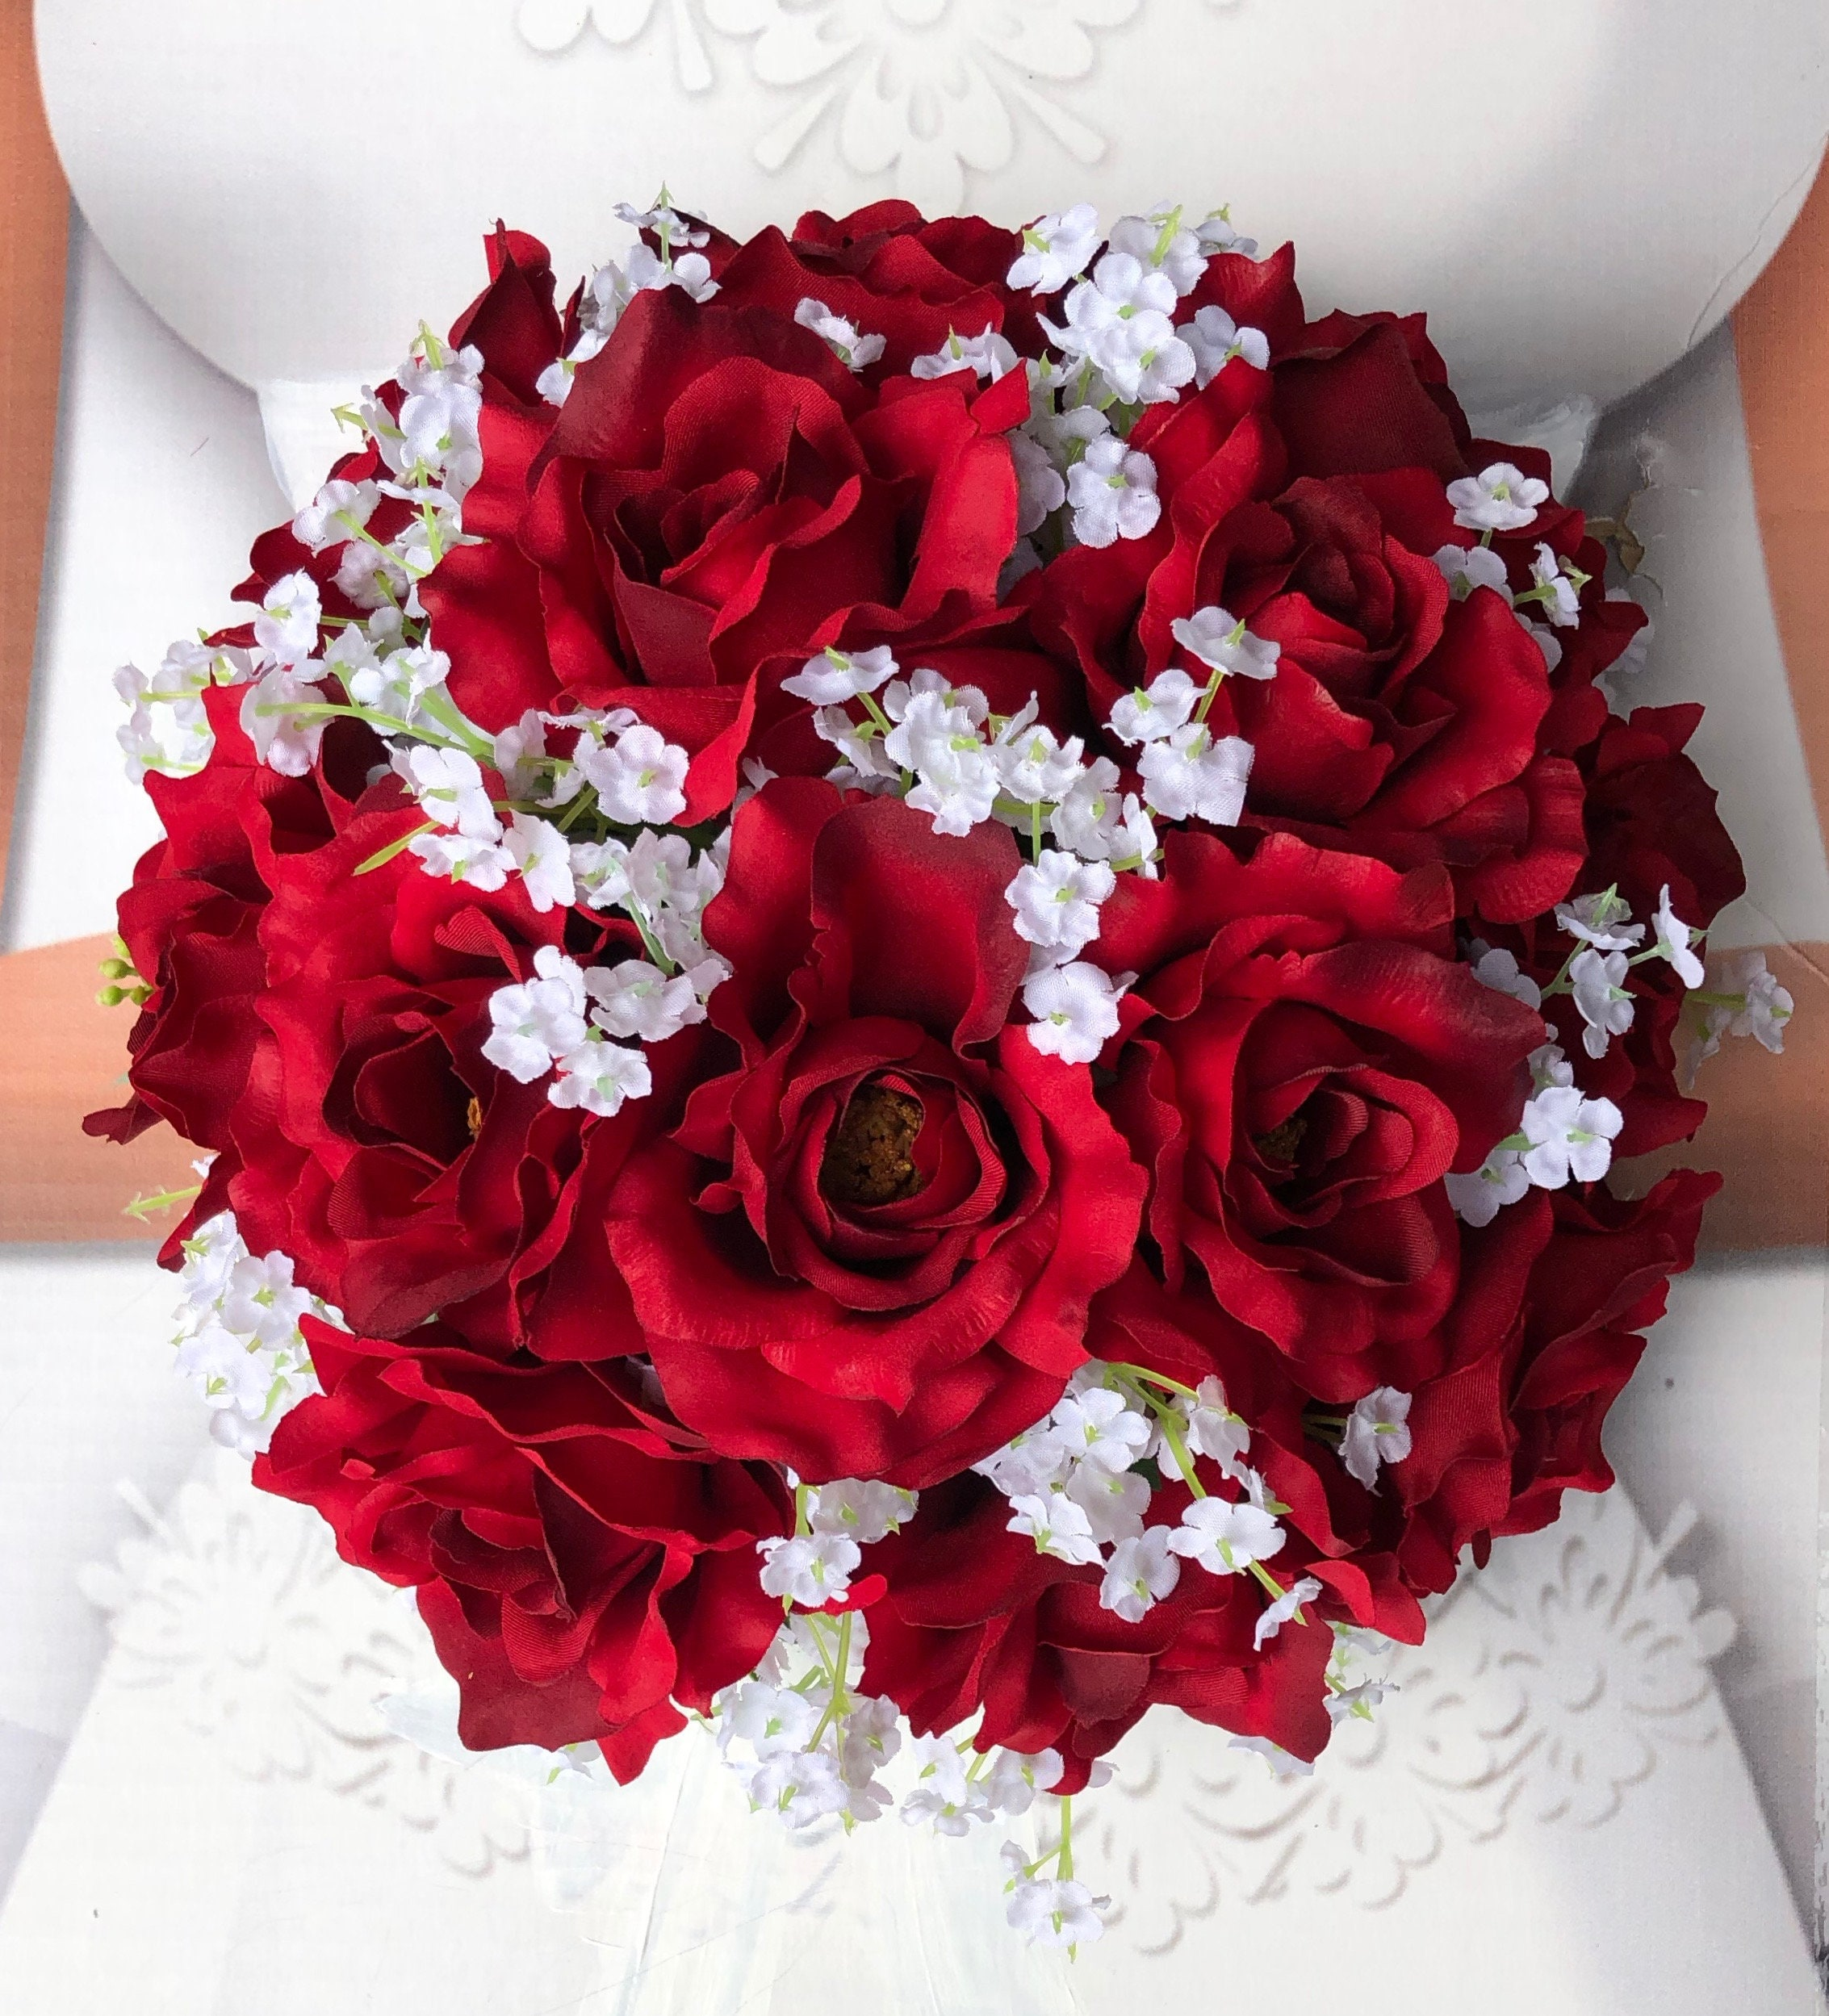 Red Roses Wedding Bouquets.New Artificial Apple Red Wedding Bouquet Flowers Baby S Breath And Apple Bridal Bouquet